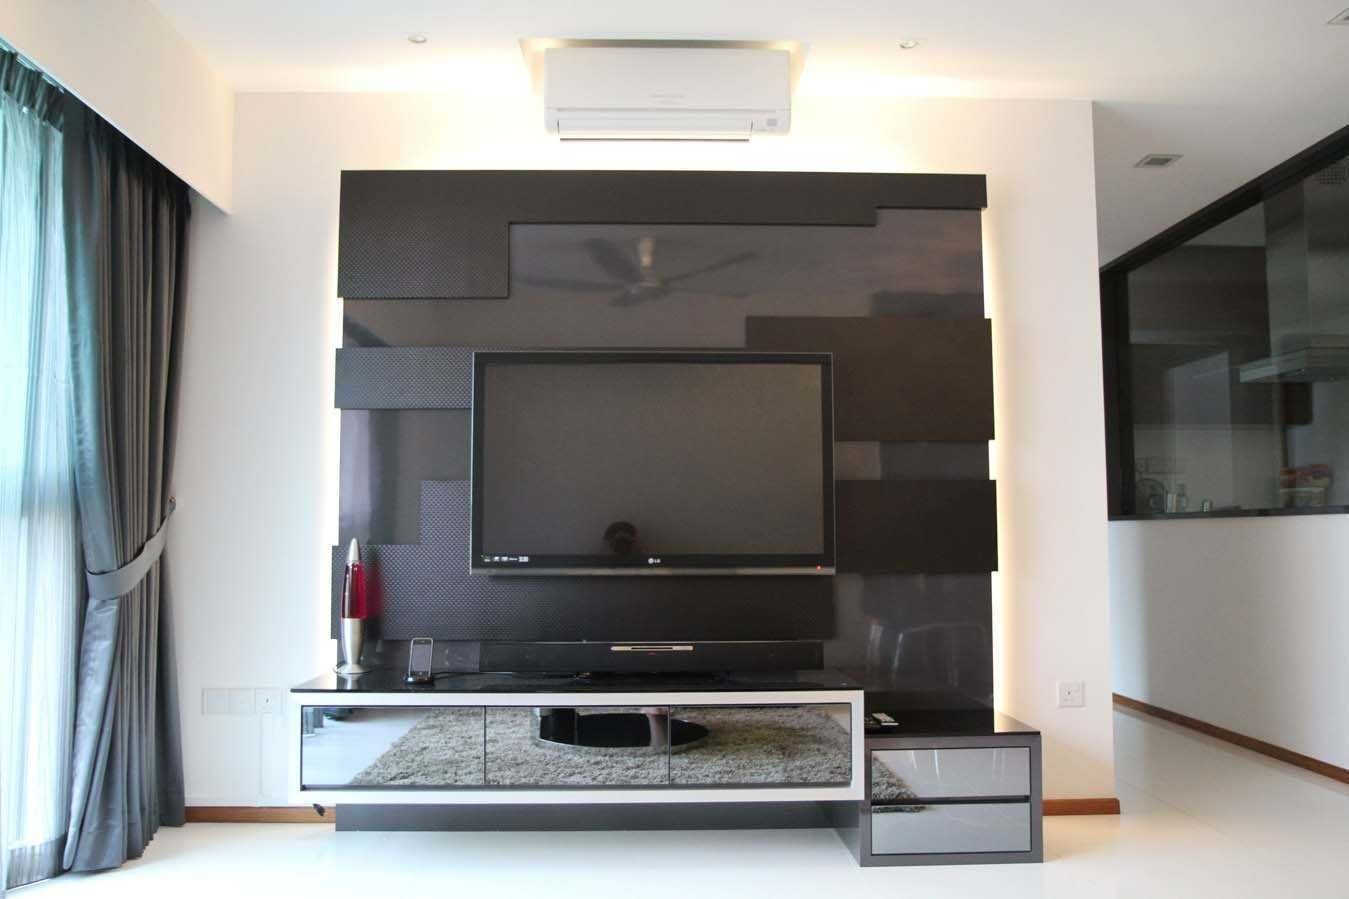 Tv Wall Unit Designs For Small Living Room Whether You Re Making A Bathroom That Is New Or Modeling The Cur One